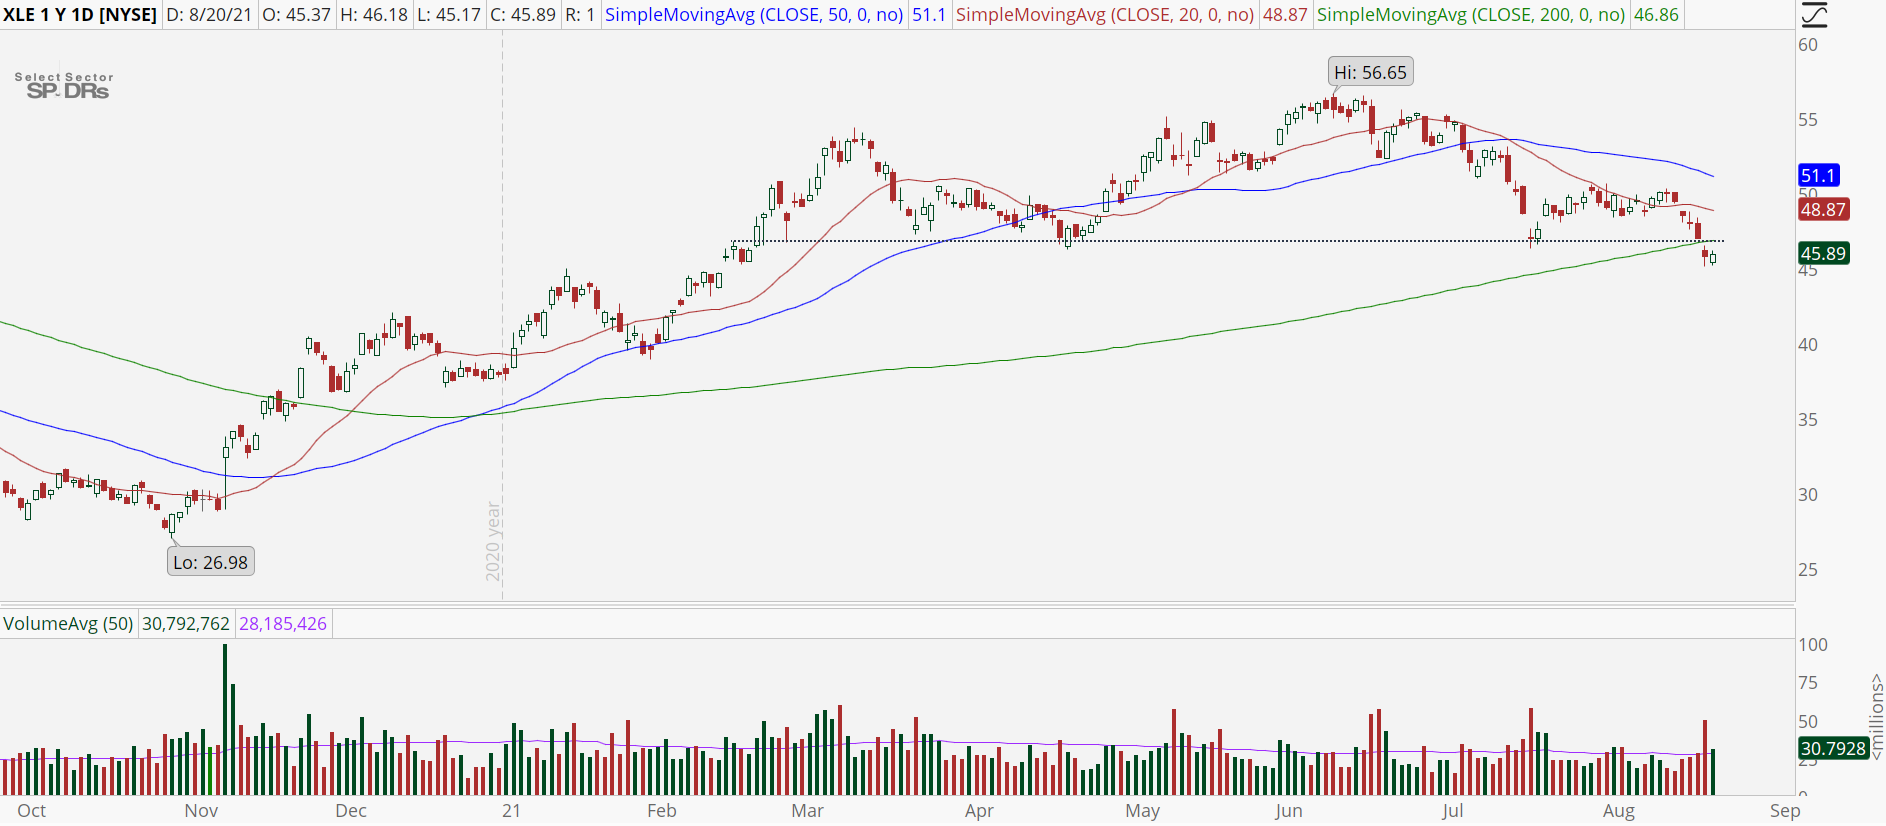 Energy Sector (XLE) stock chart with oversold setup.